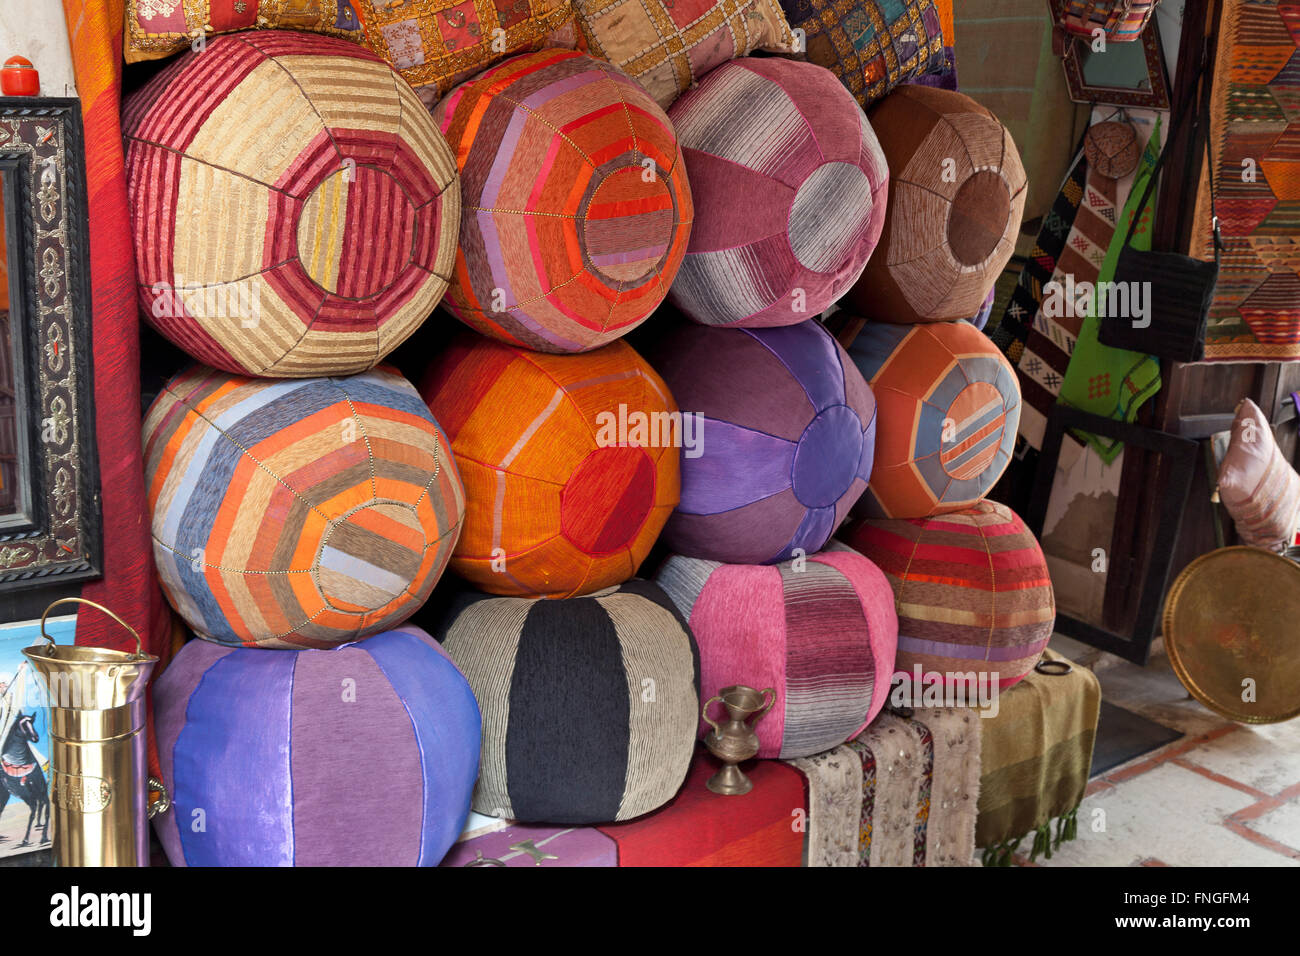 Moroccan poufs for sale in the souk of Marakesh, Morocco - Stock Image